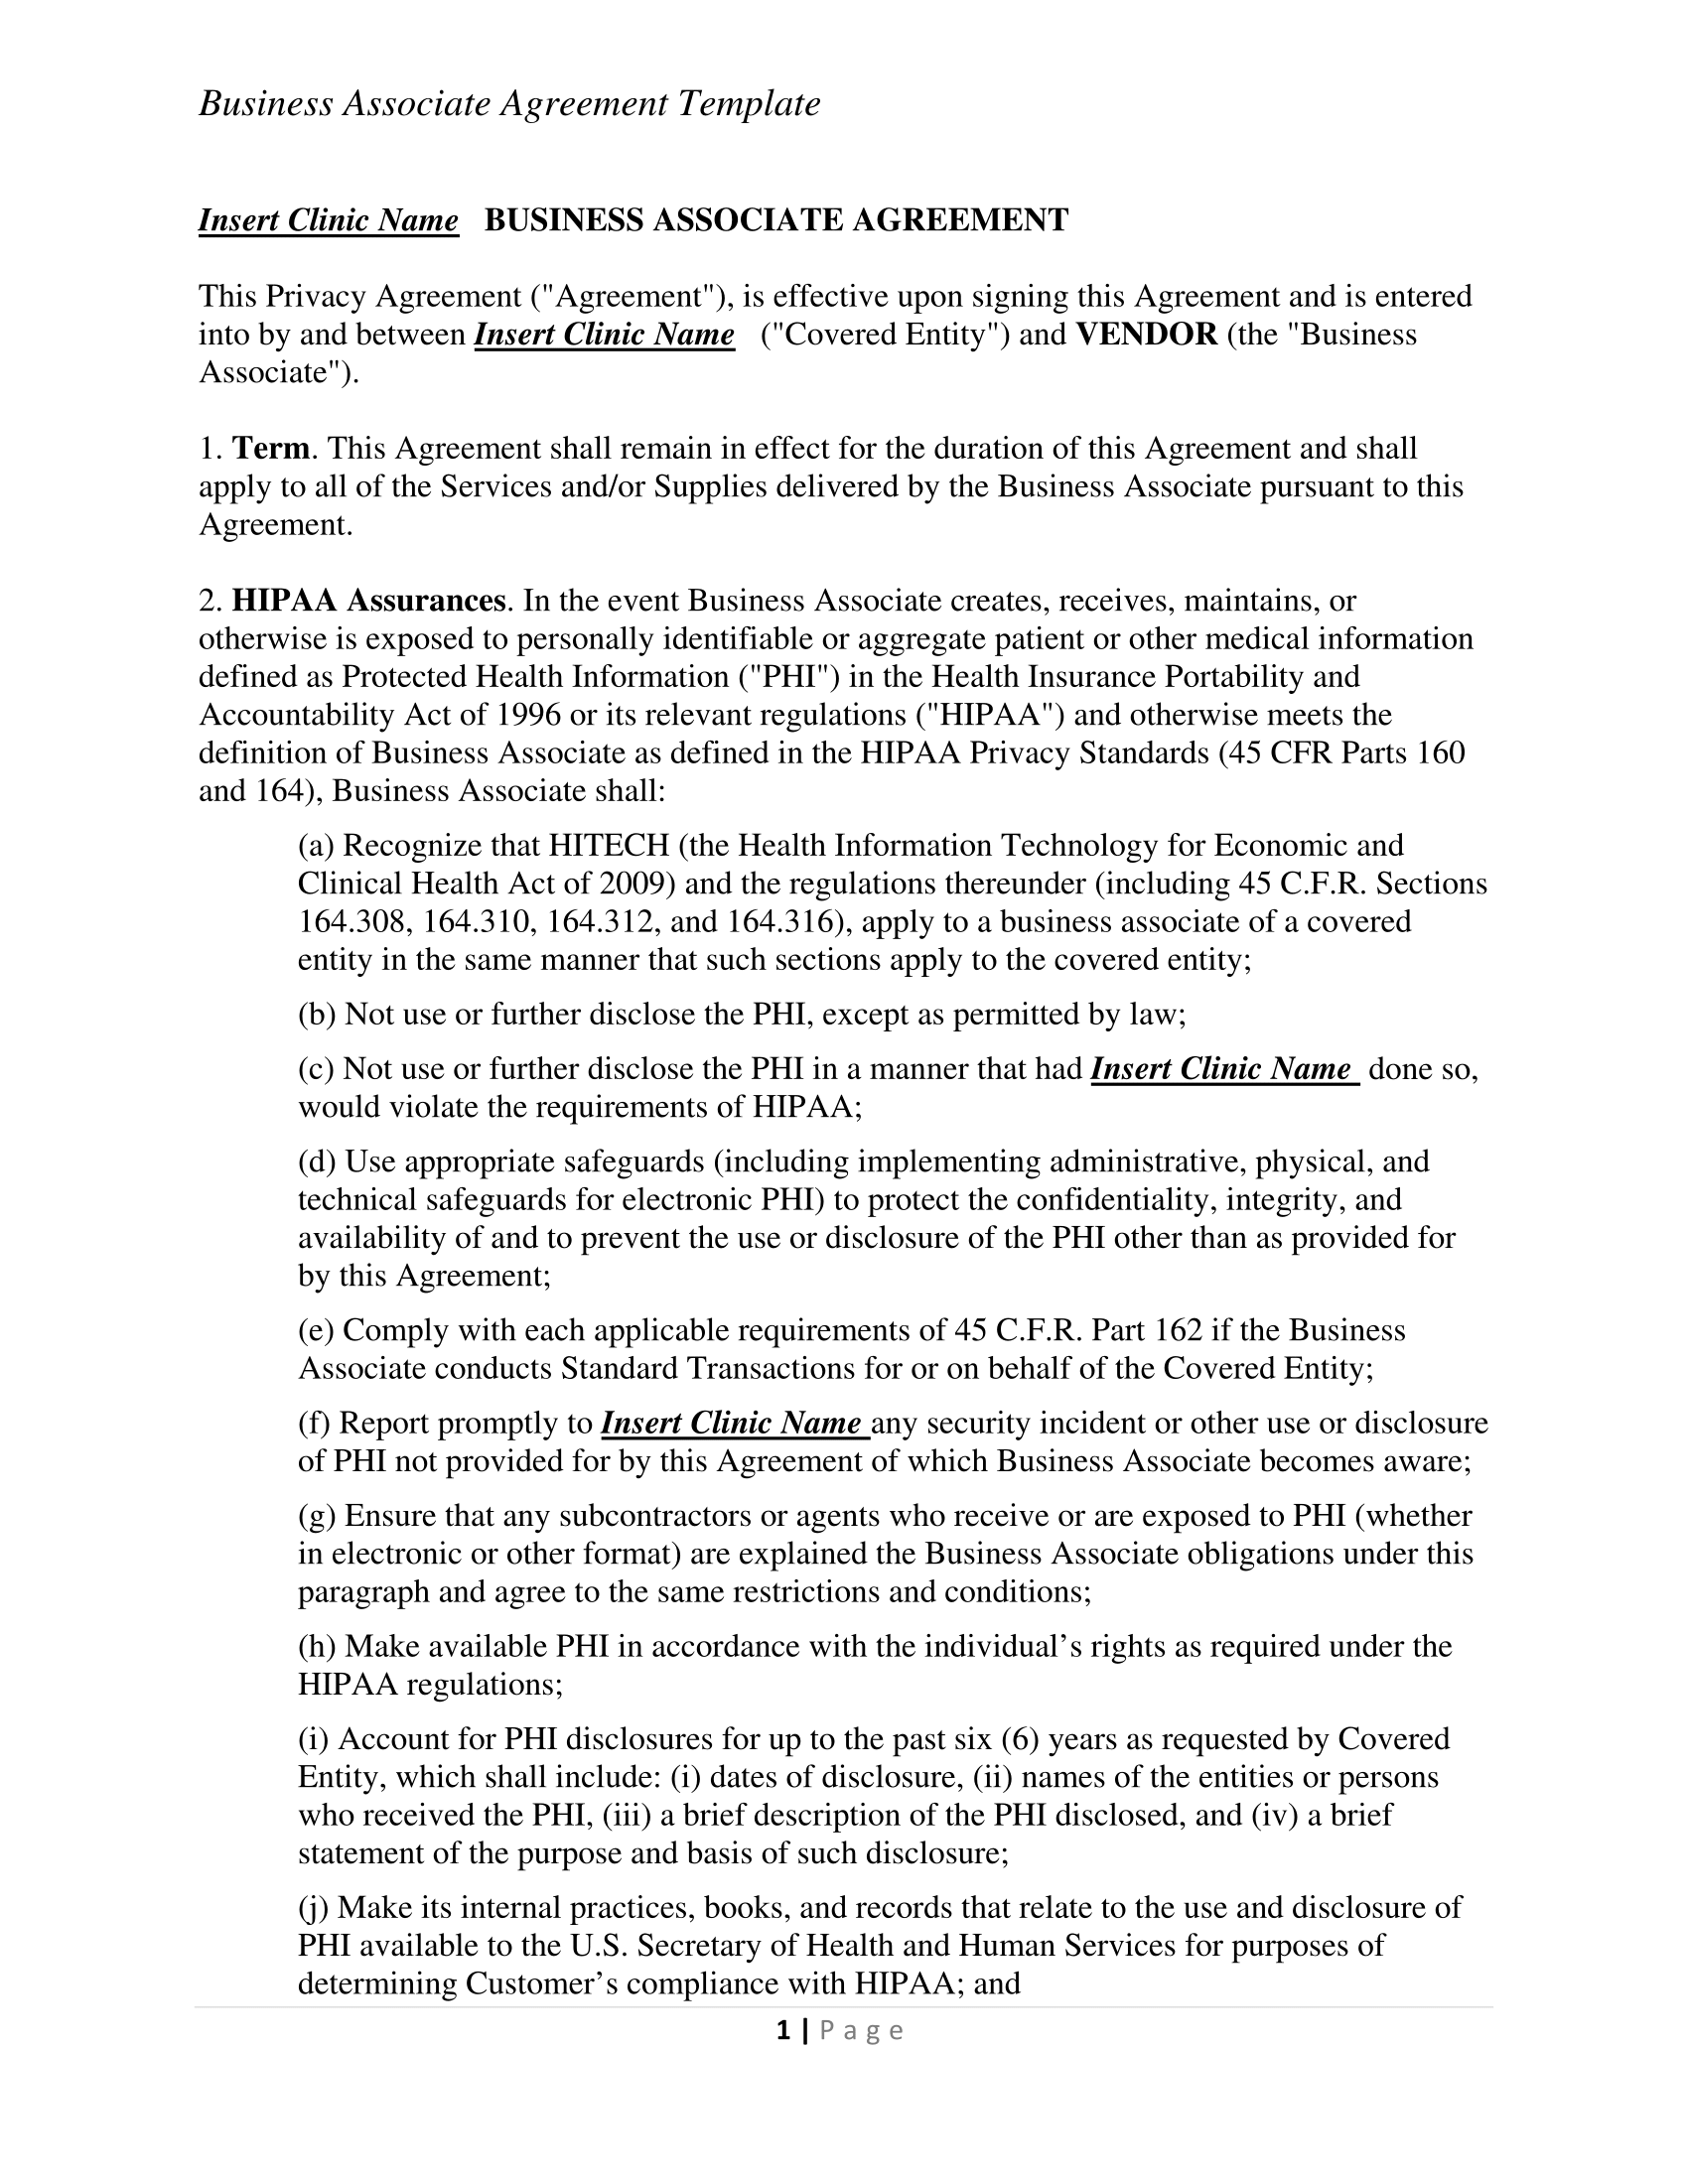 business associate agreement contract pdf download 1